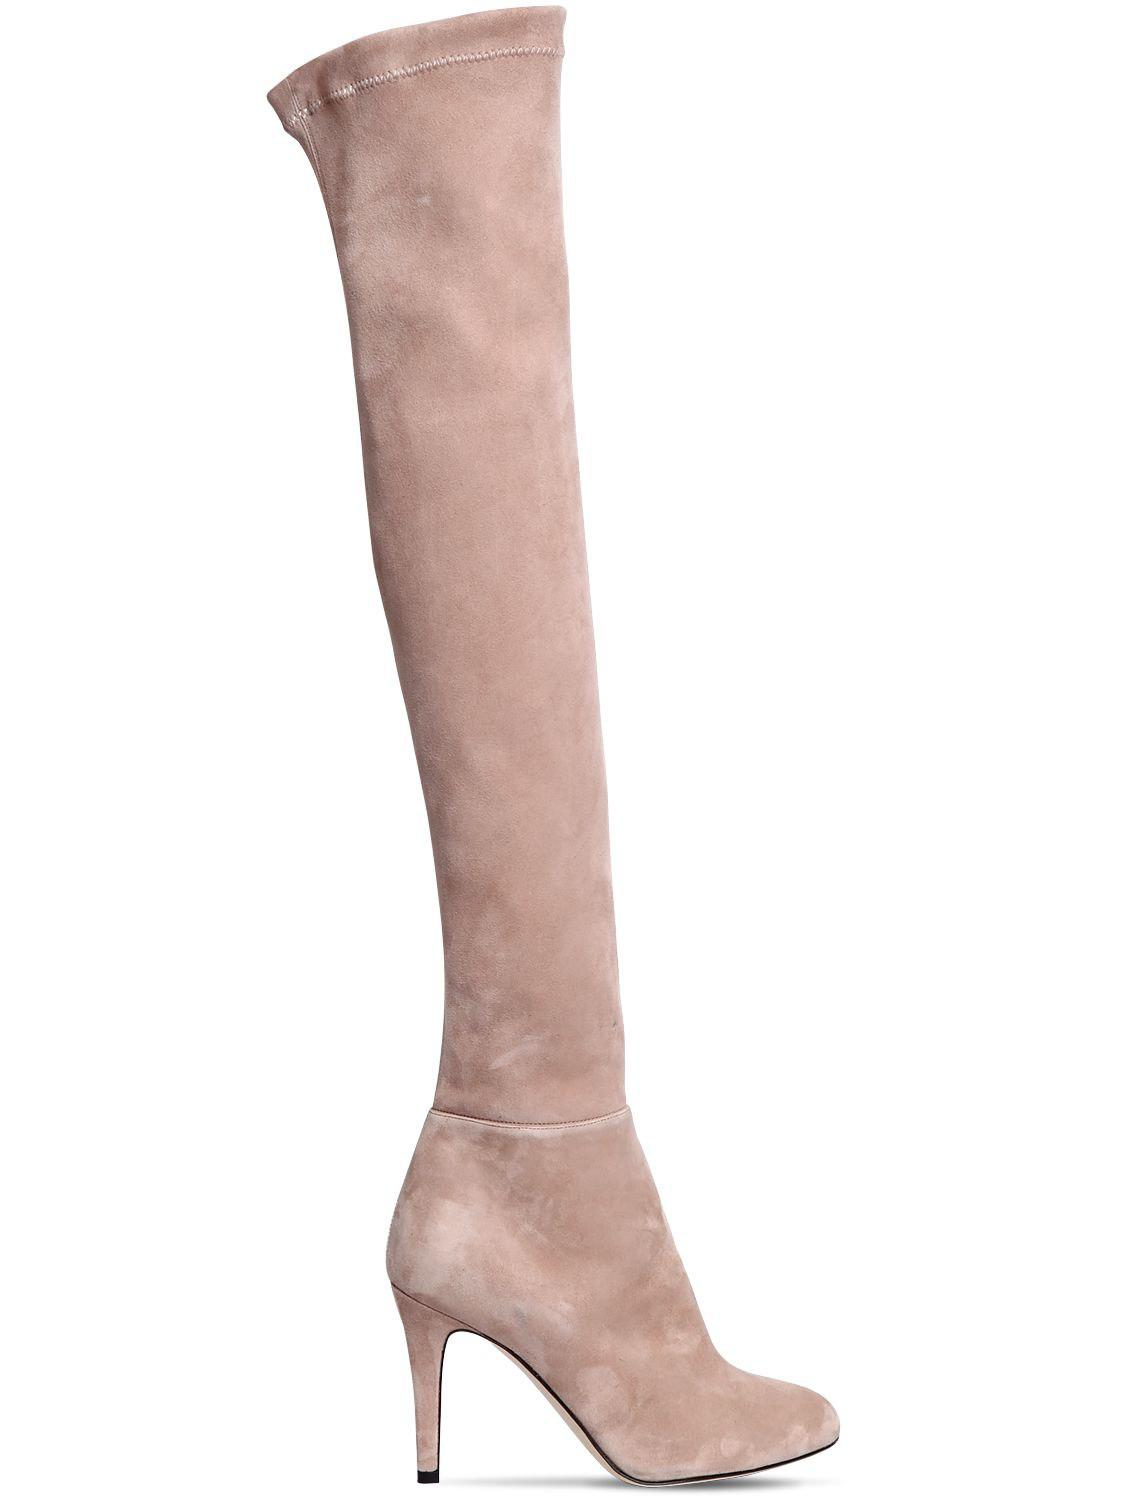 d7bdad33c55 Lyst - Jimmy Choo 90mm Toni Suede Over The Knee Boots in Natural